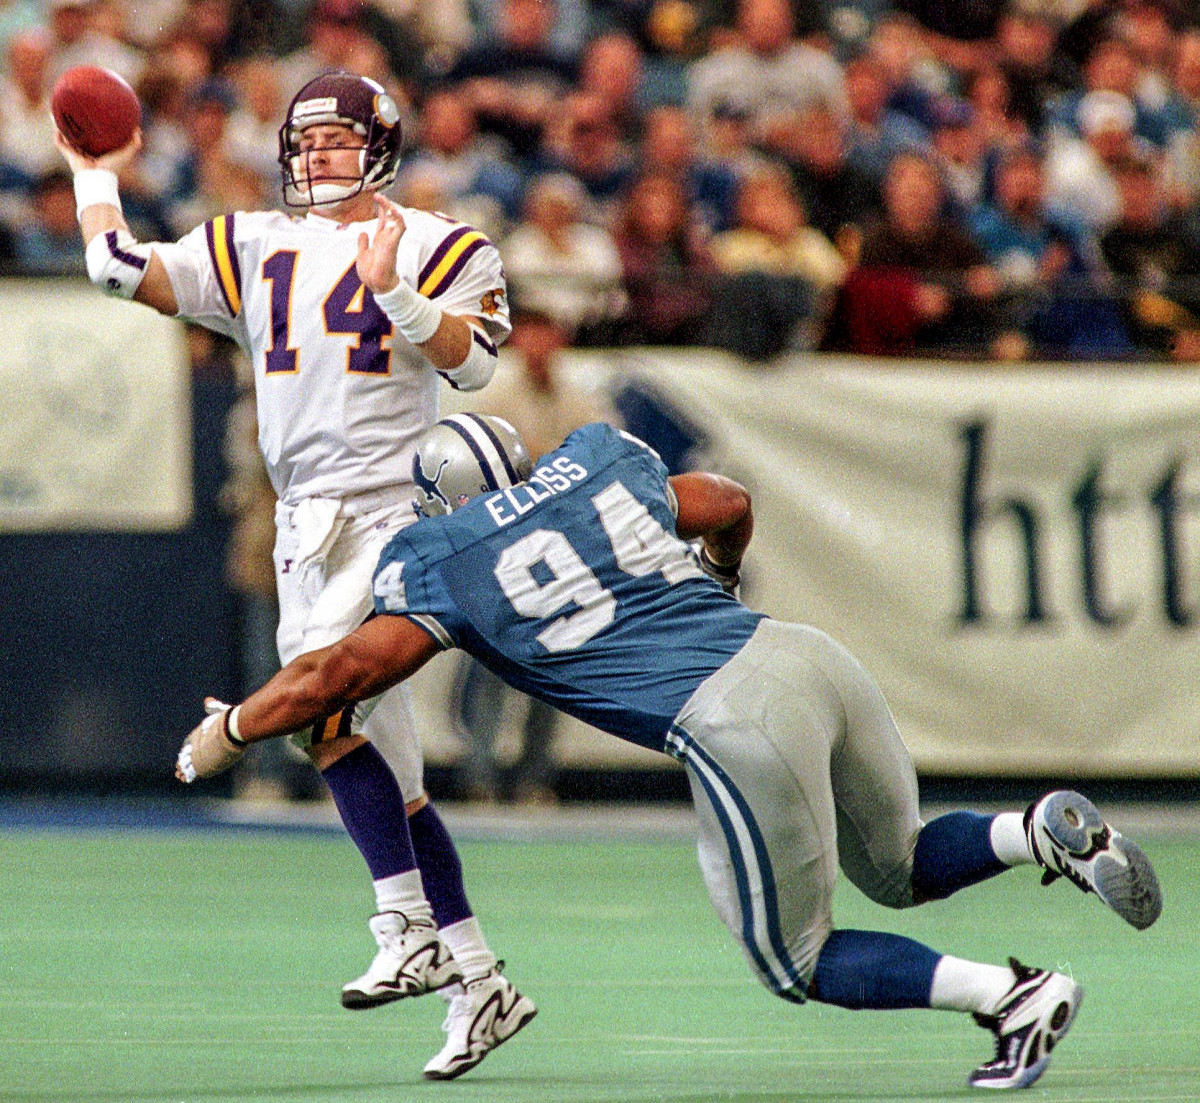 In 1997, Luther Elliss chased down then-Vikings quarterback Brad Johnson during a Vikings-Lions game